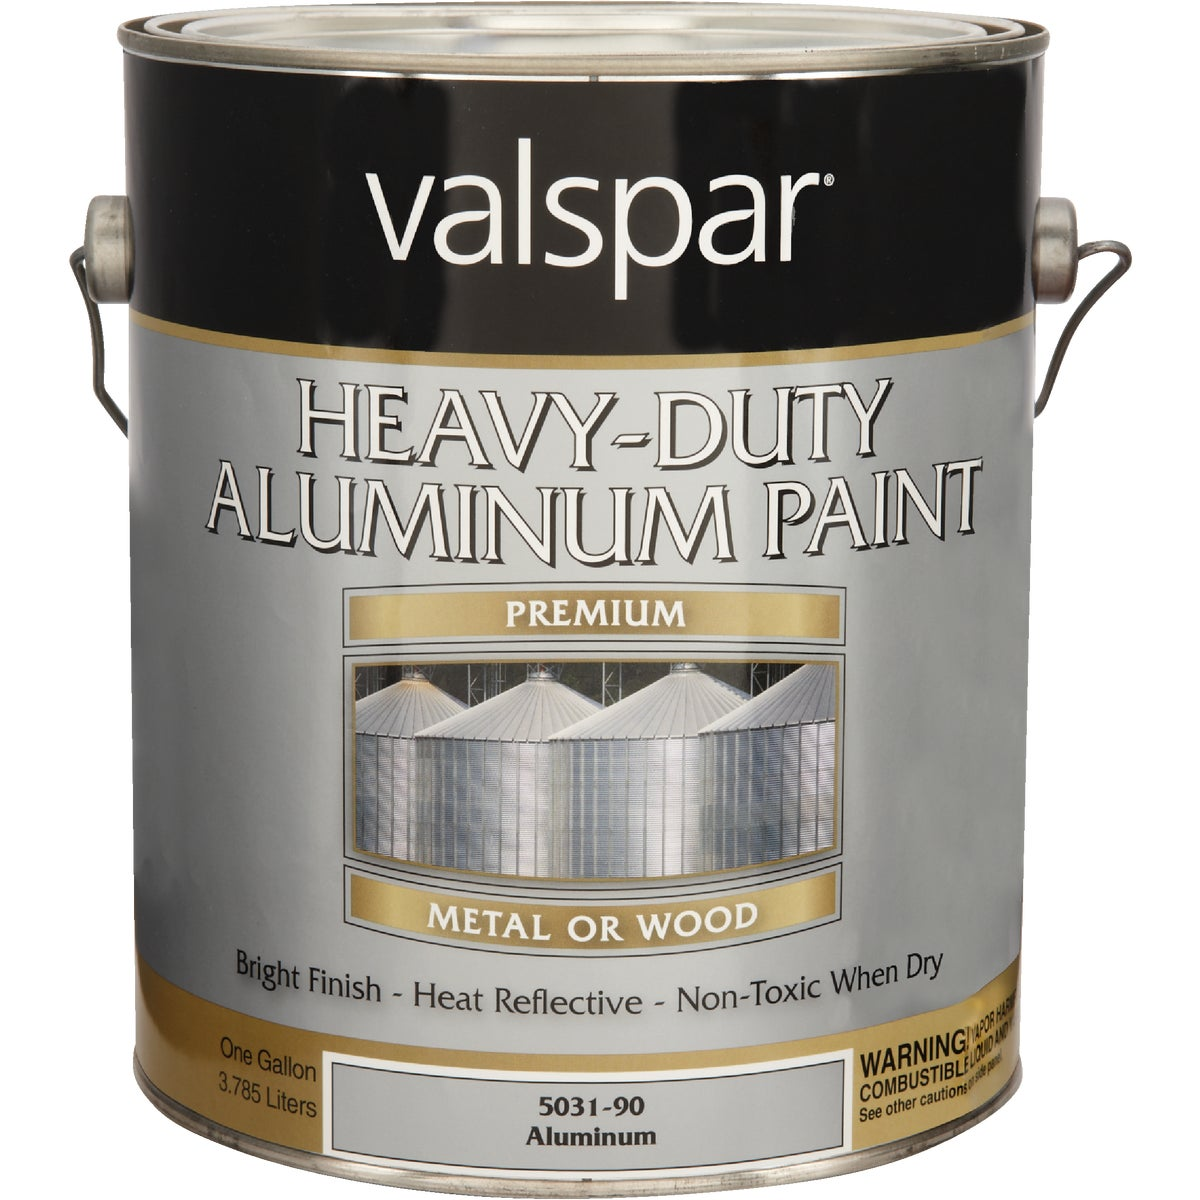 HD ALUMINUM PAINT - 018.5031-90.007 by Valspar Corp